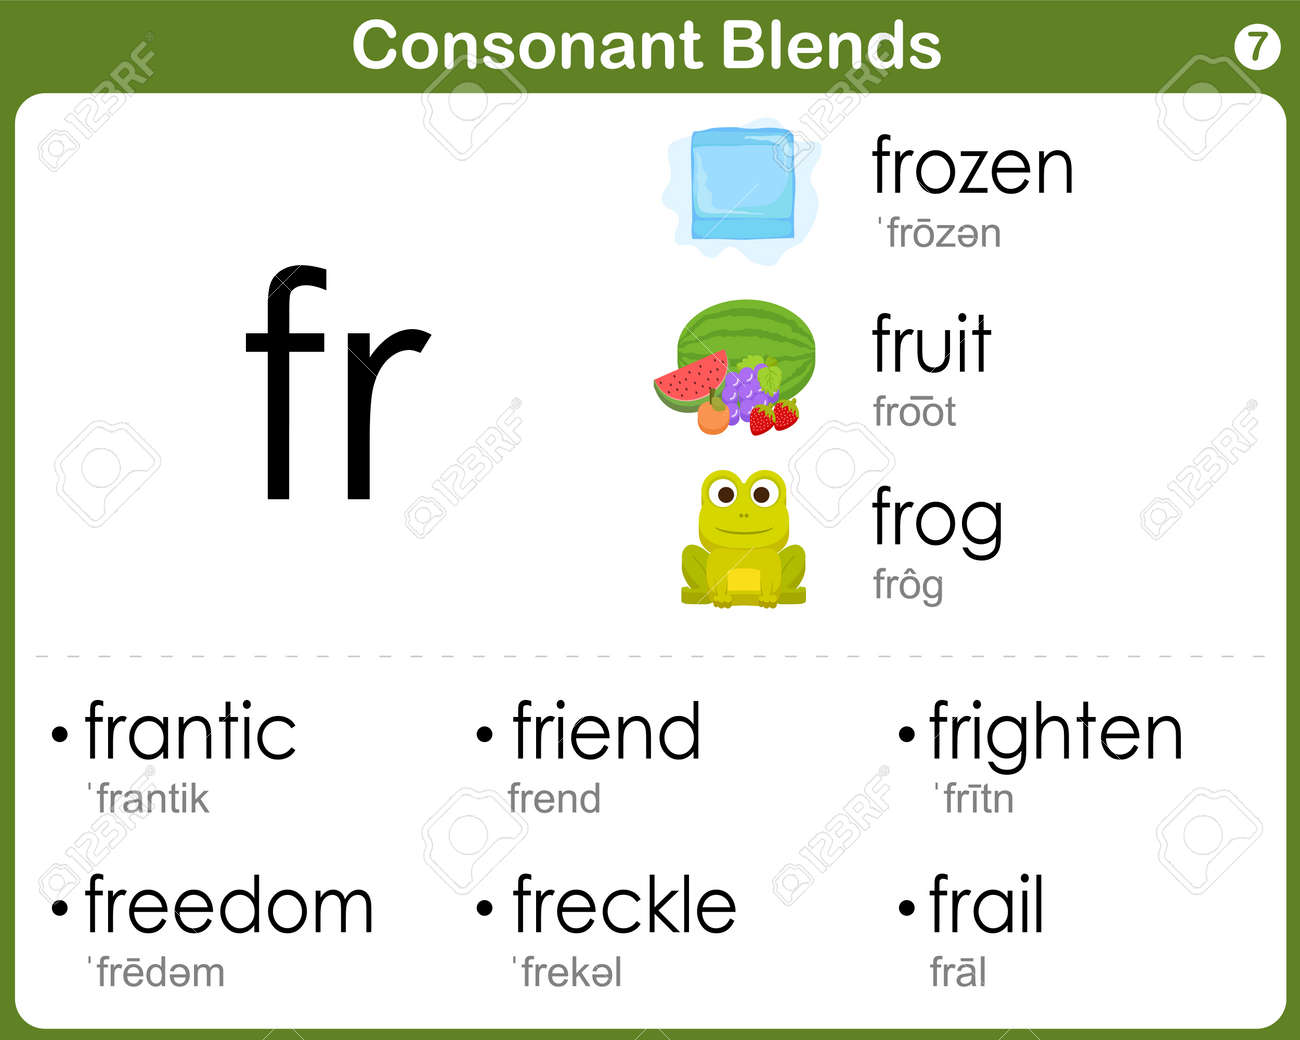 worksheet Consonant Blend Worksheets free consonant blends worksheets library download c s nt w ksheet kids roy lty clip rts vect s